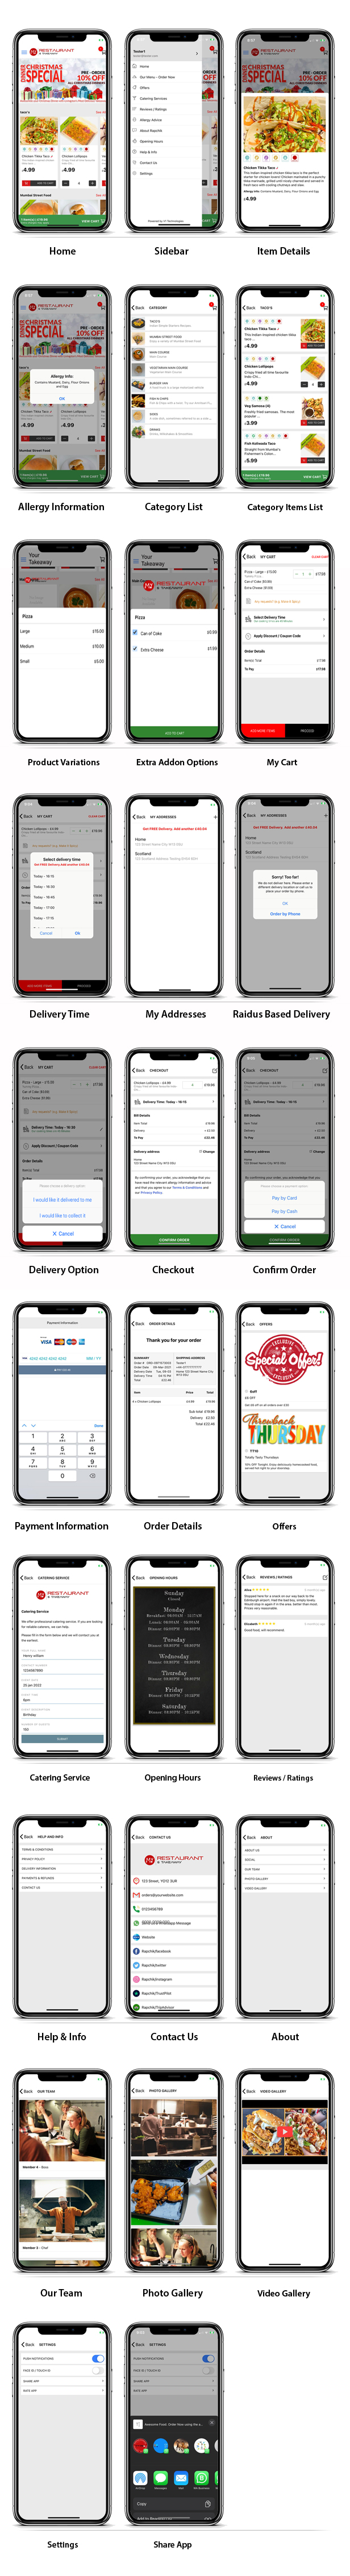 Takeaway Restaurant Online Food Ordering Delivery System (iOs, Android, Onwer App, Website & Admin) - 11